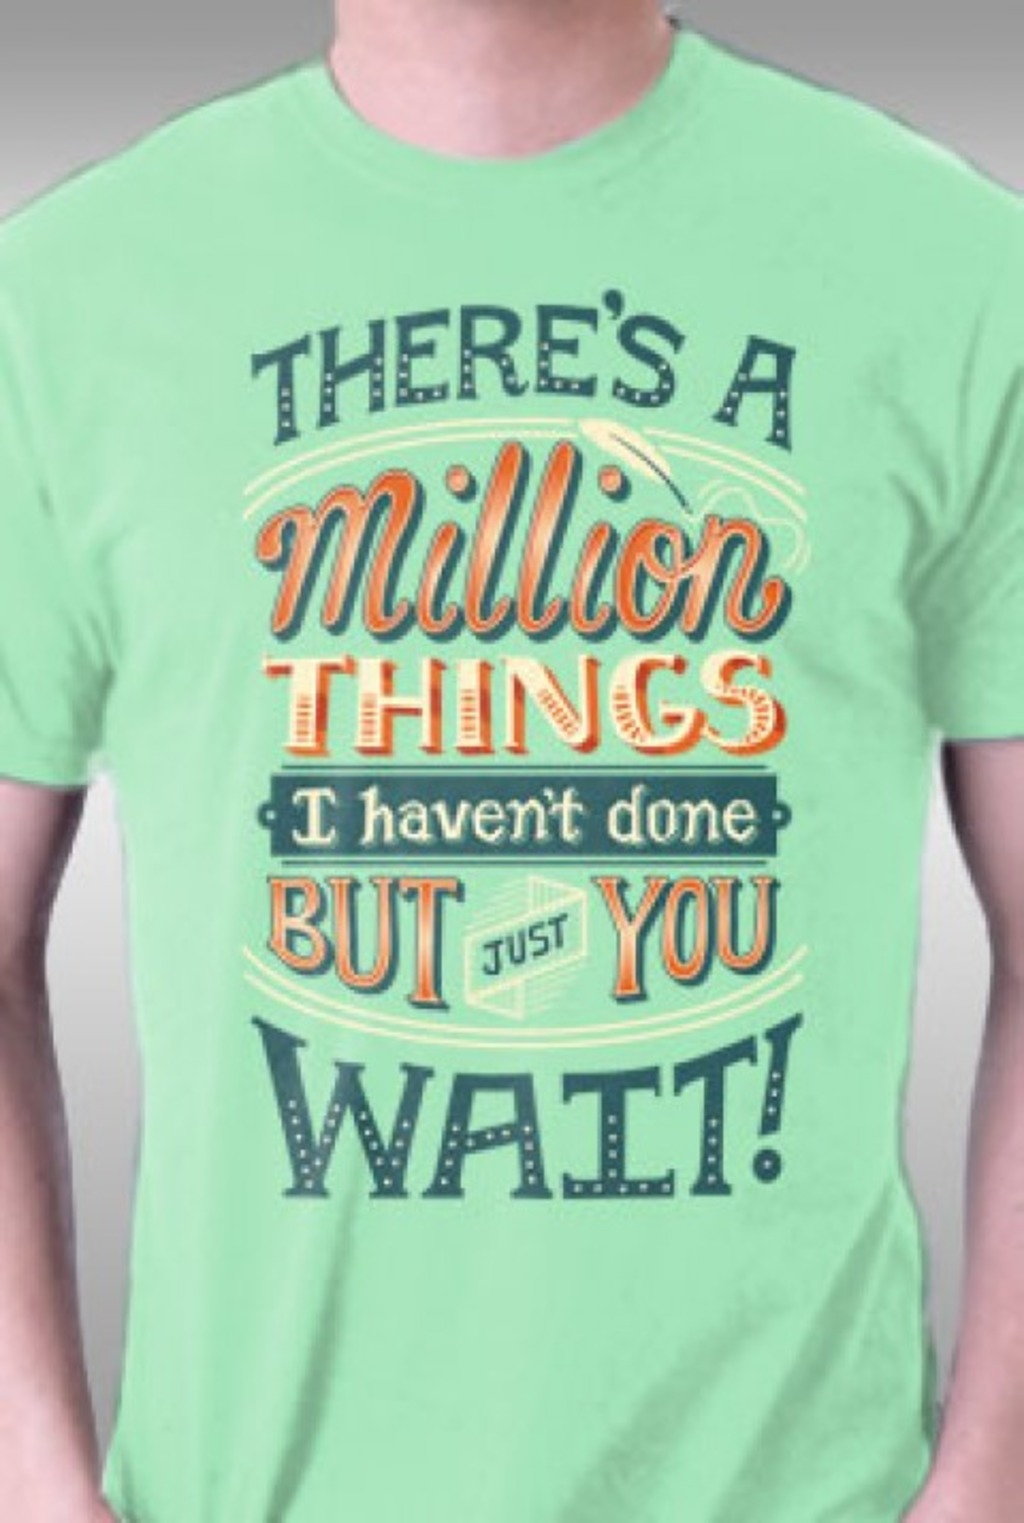 TeeFury: A Million Things